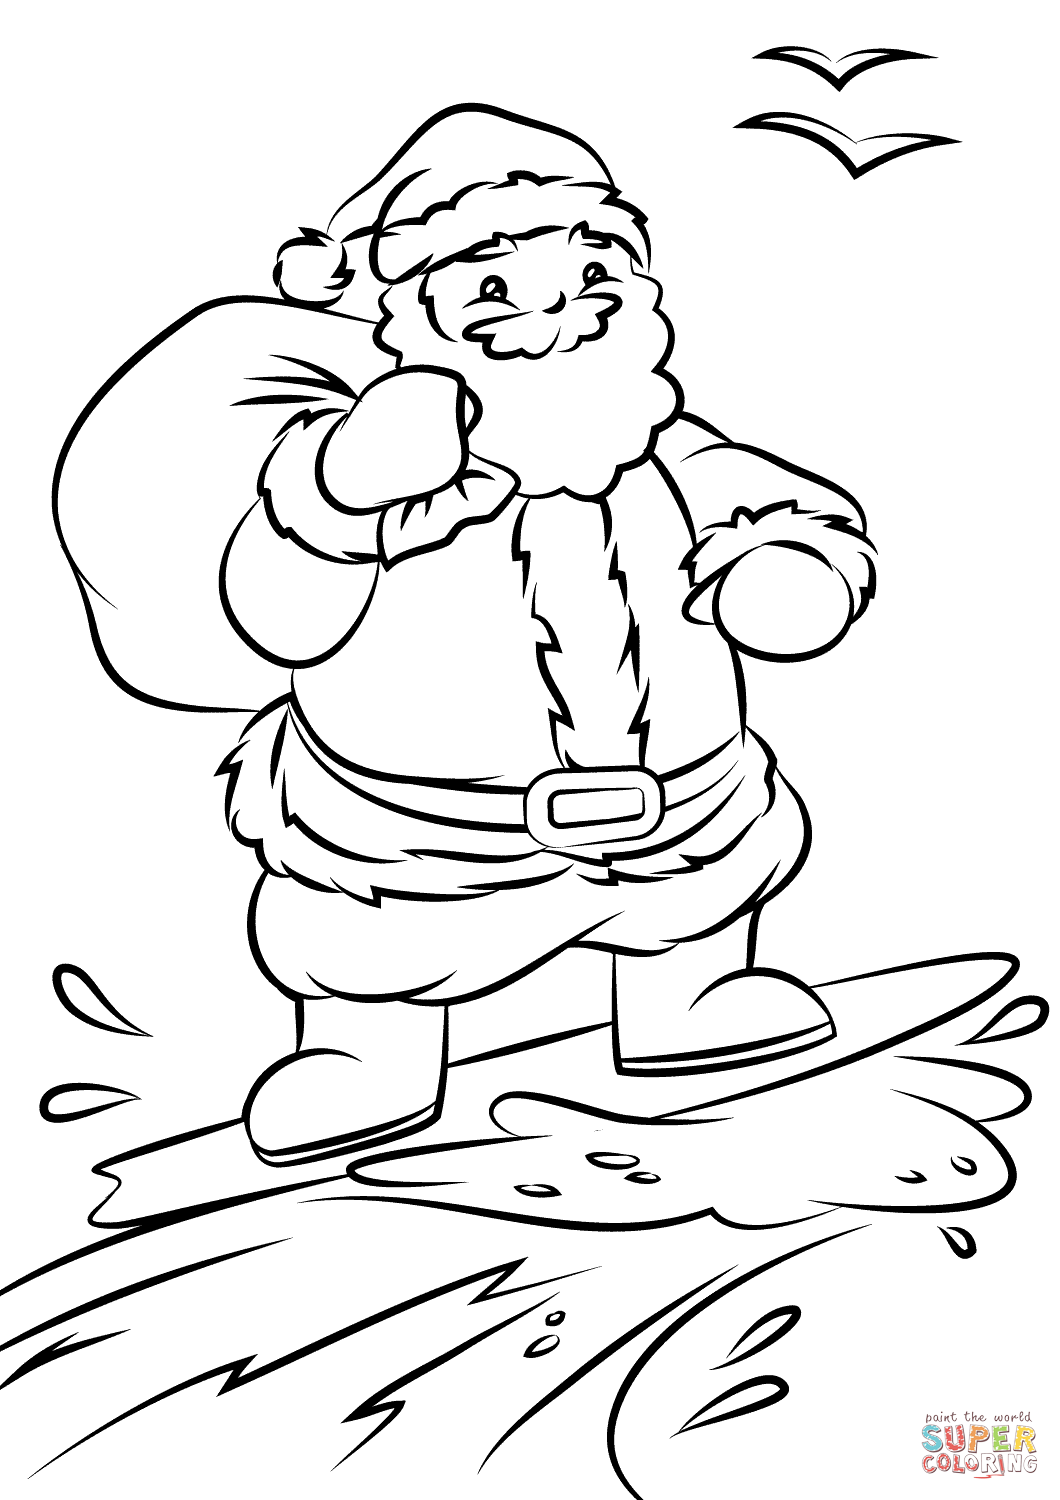 Santa Coloring Sheet Printable With Surfing Page Free Pages